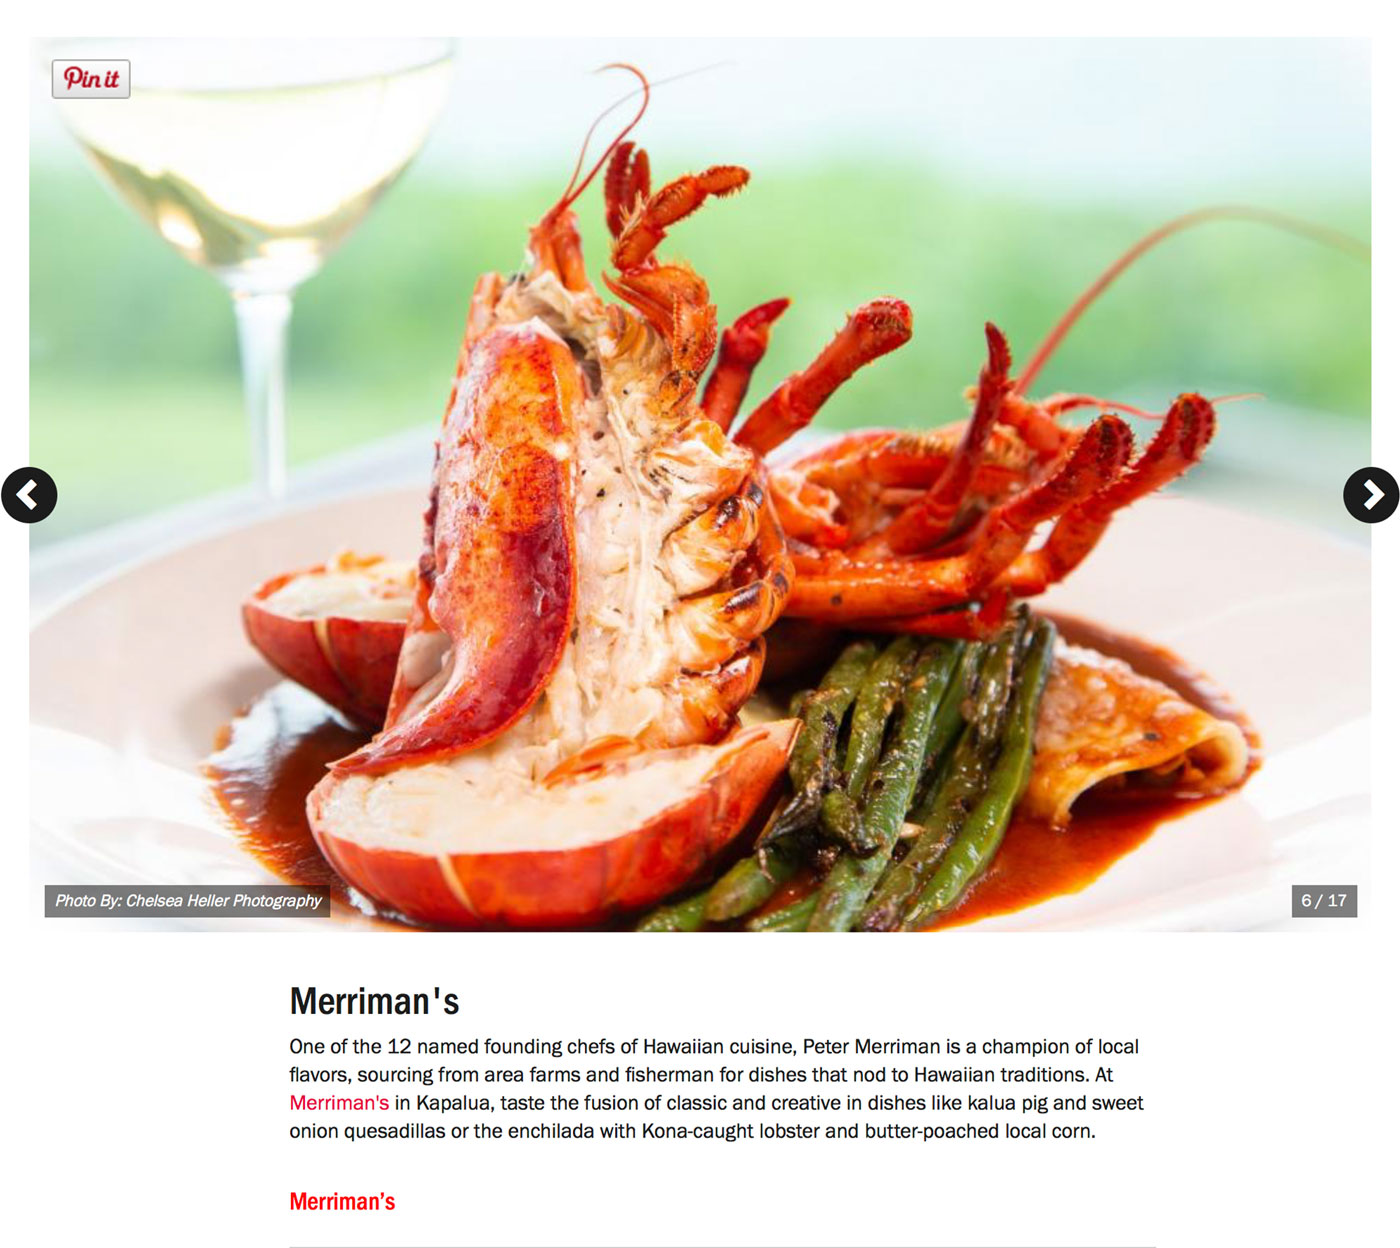 "Screenshot from Food Network's Guide to:<br><a href=""https://www.foodnetwork.com/restaurants/photos/restaurant-guide-maui"" target=""_blank"" rel=""noopener noreferrer"">""The Best Restaurants on Maui""</a> - Merrimans.</br>"